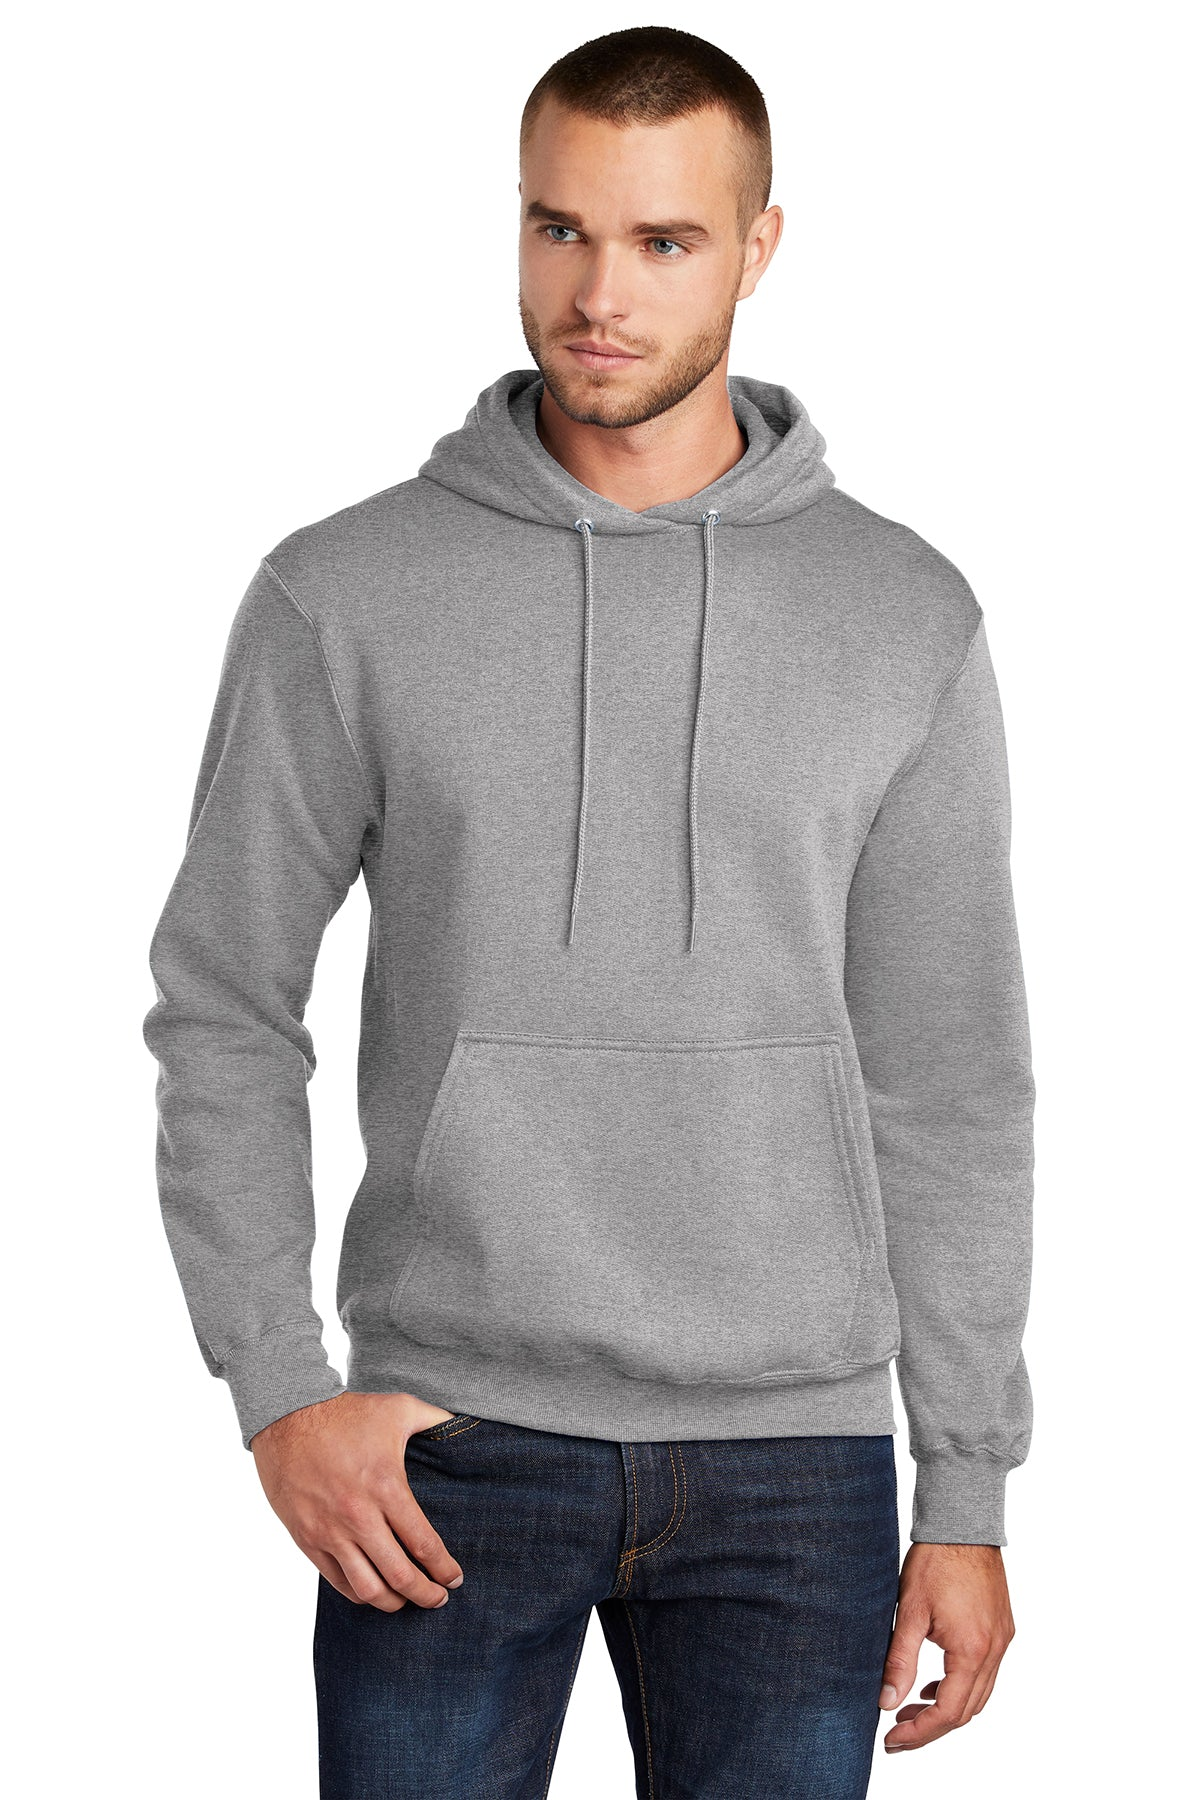 Port & Company PC78H Mens Core Fleece Hooded Sweatshirt Hoodie Heather Grey Front